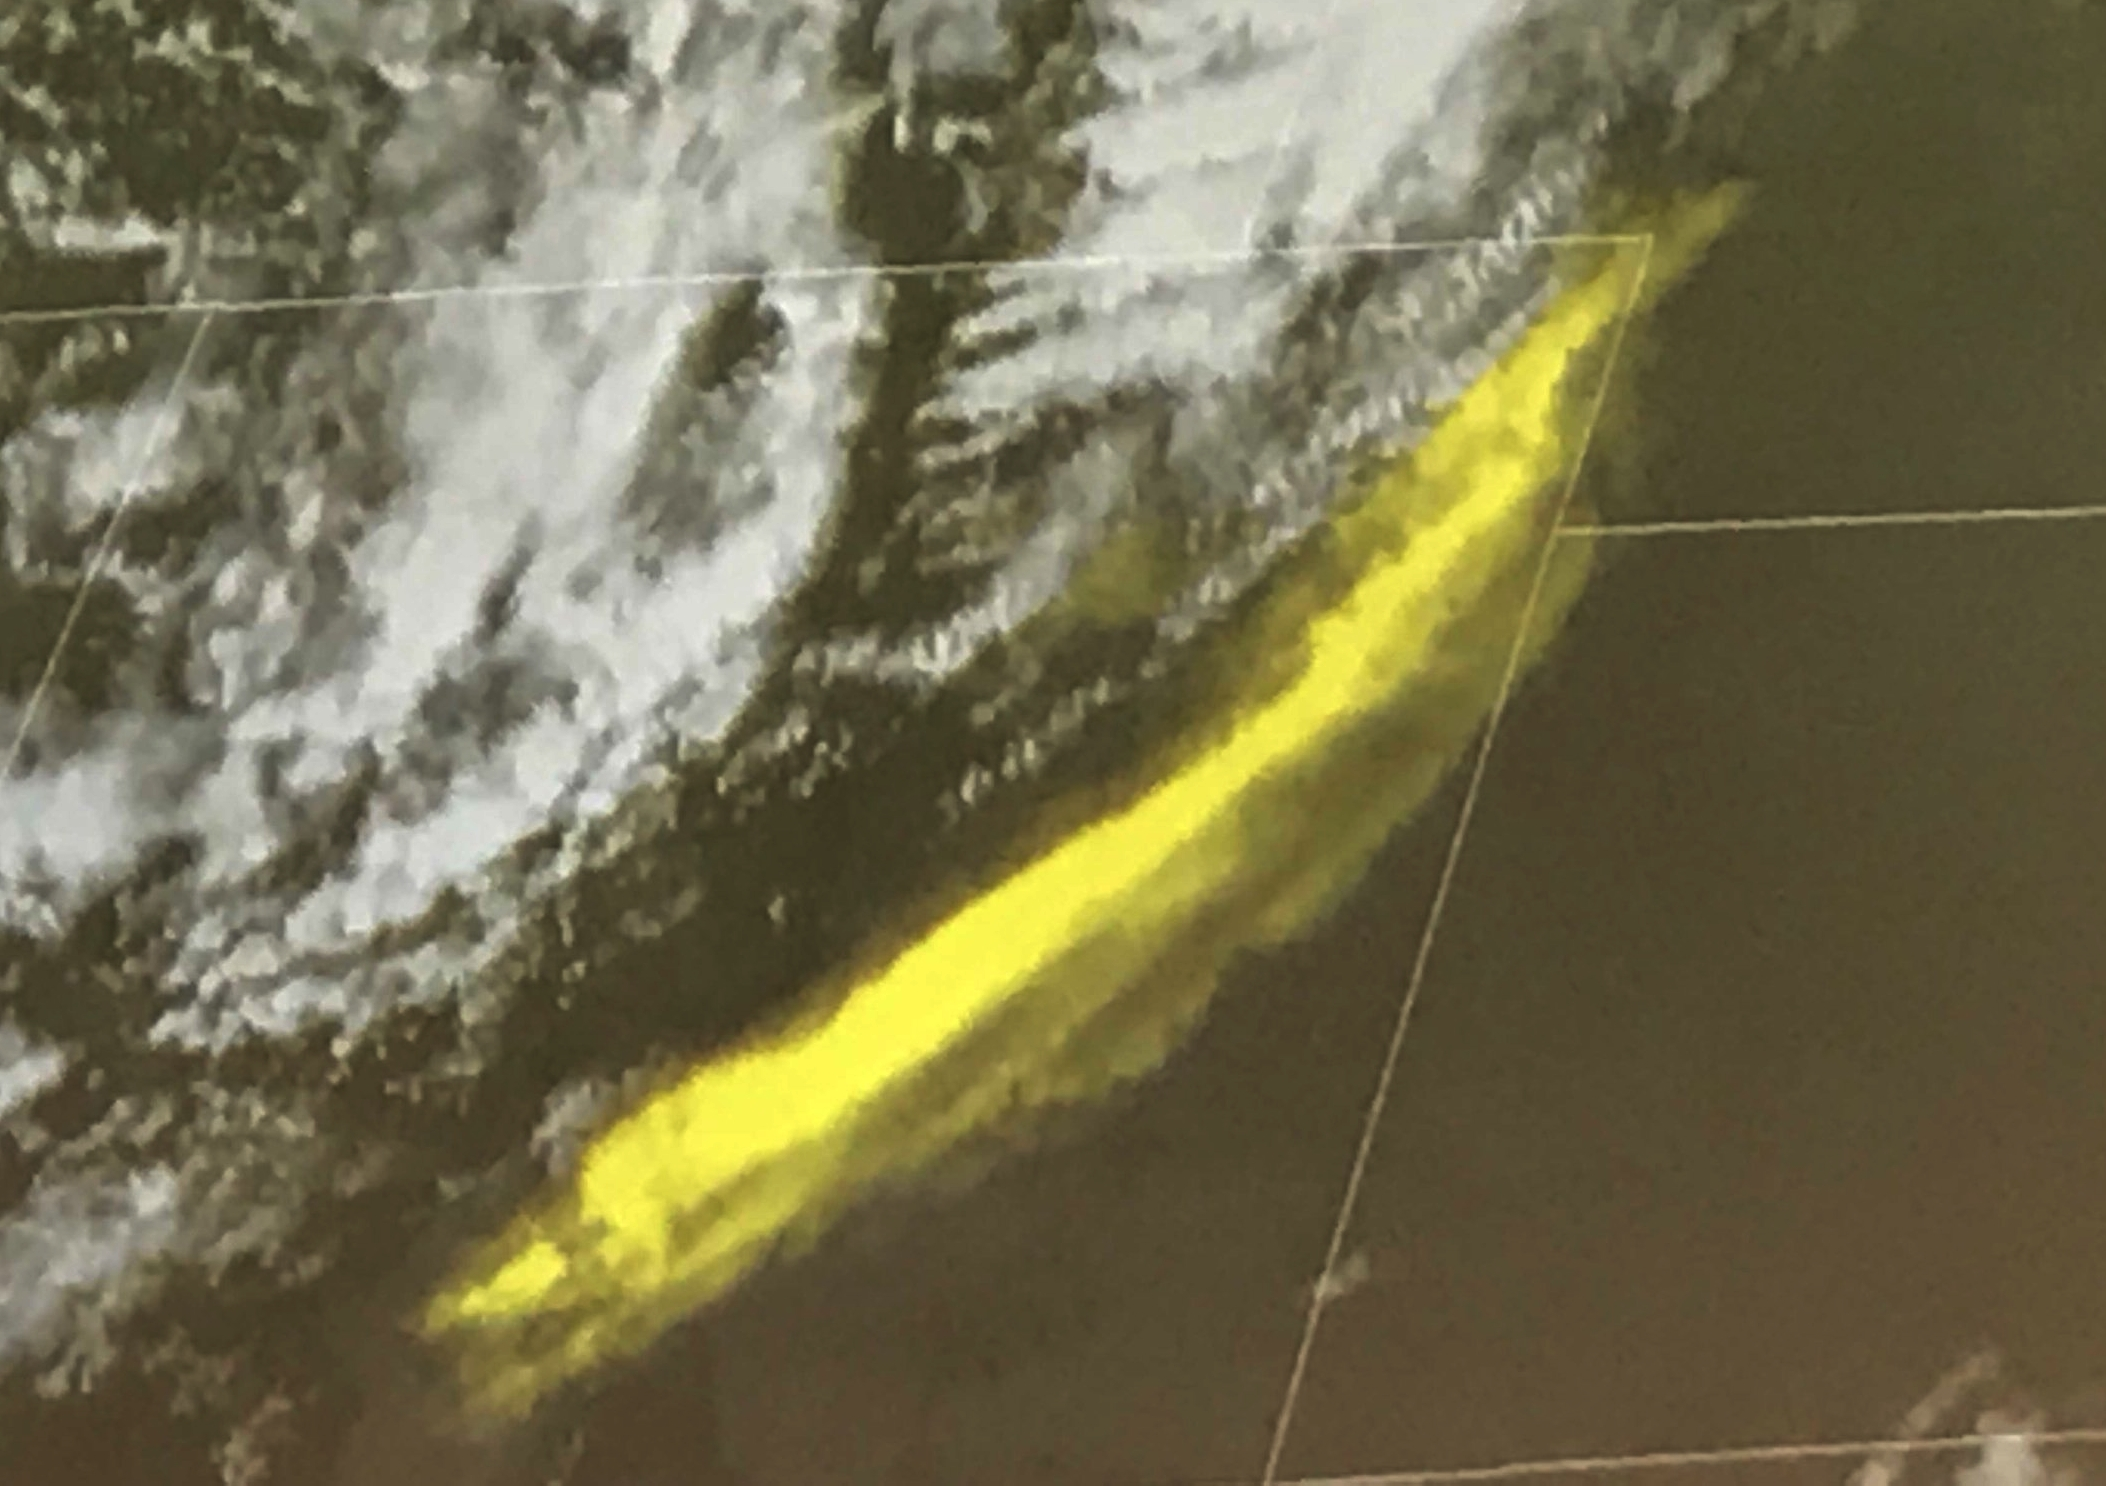 Satellite imagery where dust storm (originating from Great Sand Dunes) is being carried across Colorado. Dust is yellow while clouds are white. Previous imagery would not have been able to distinguish these.